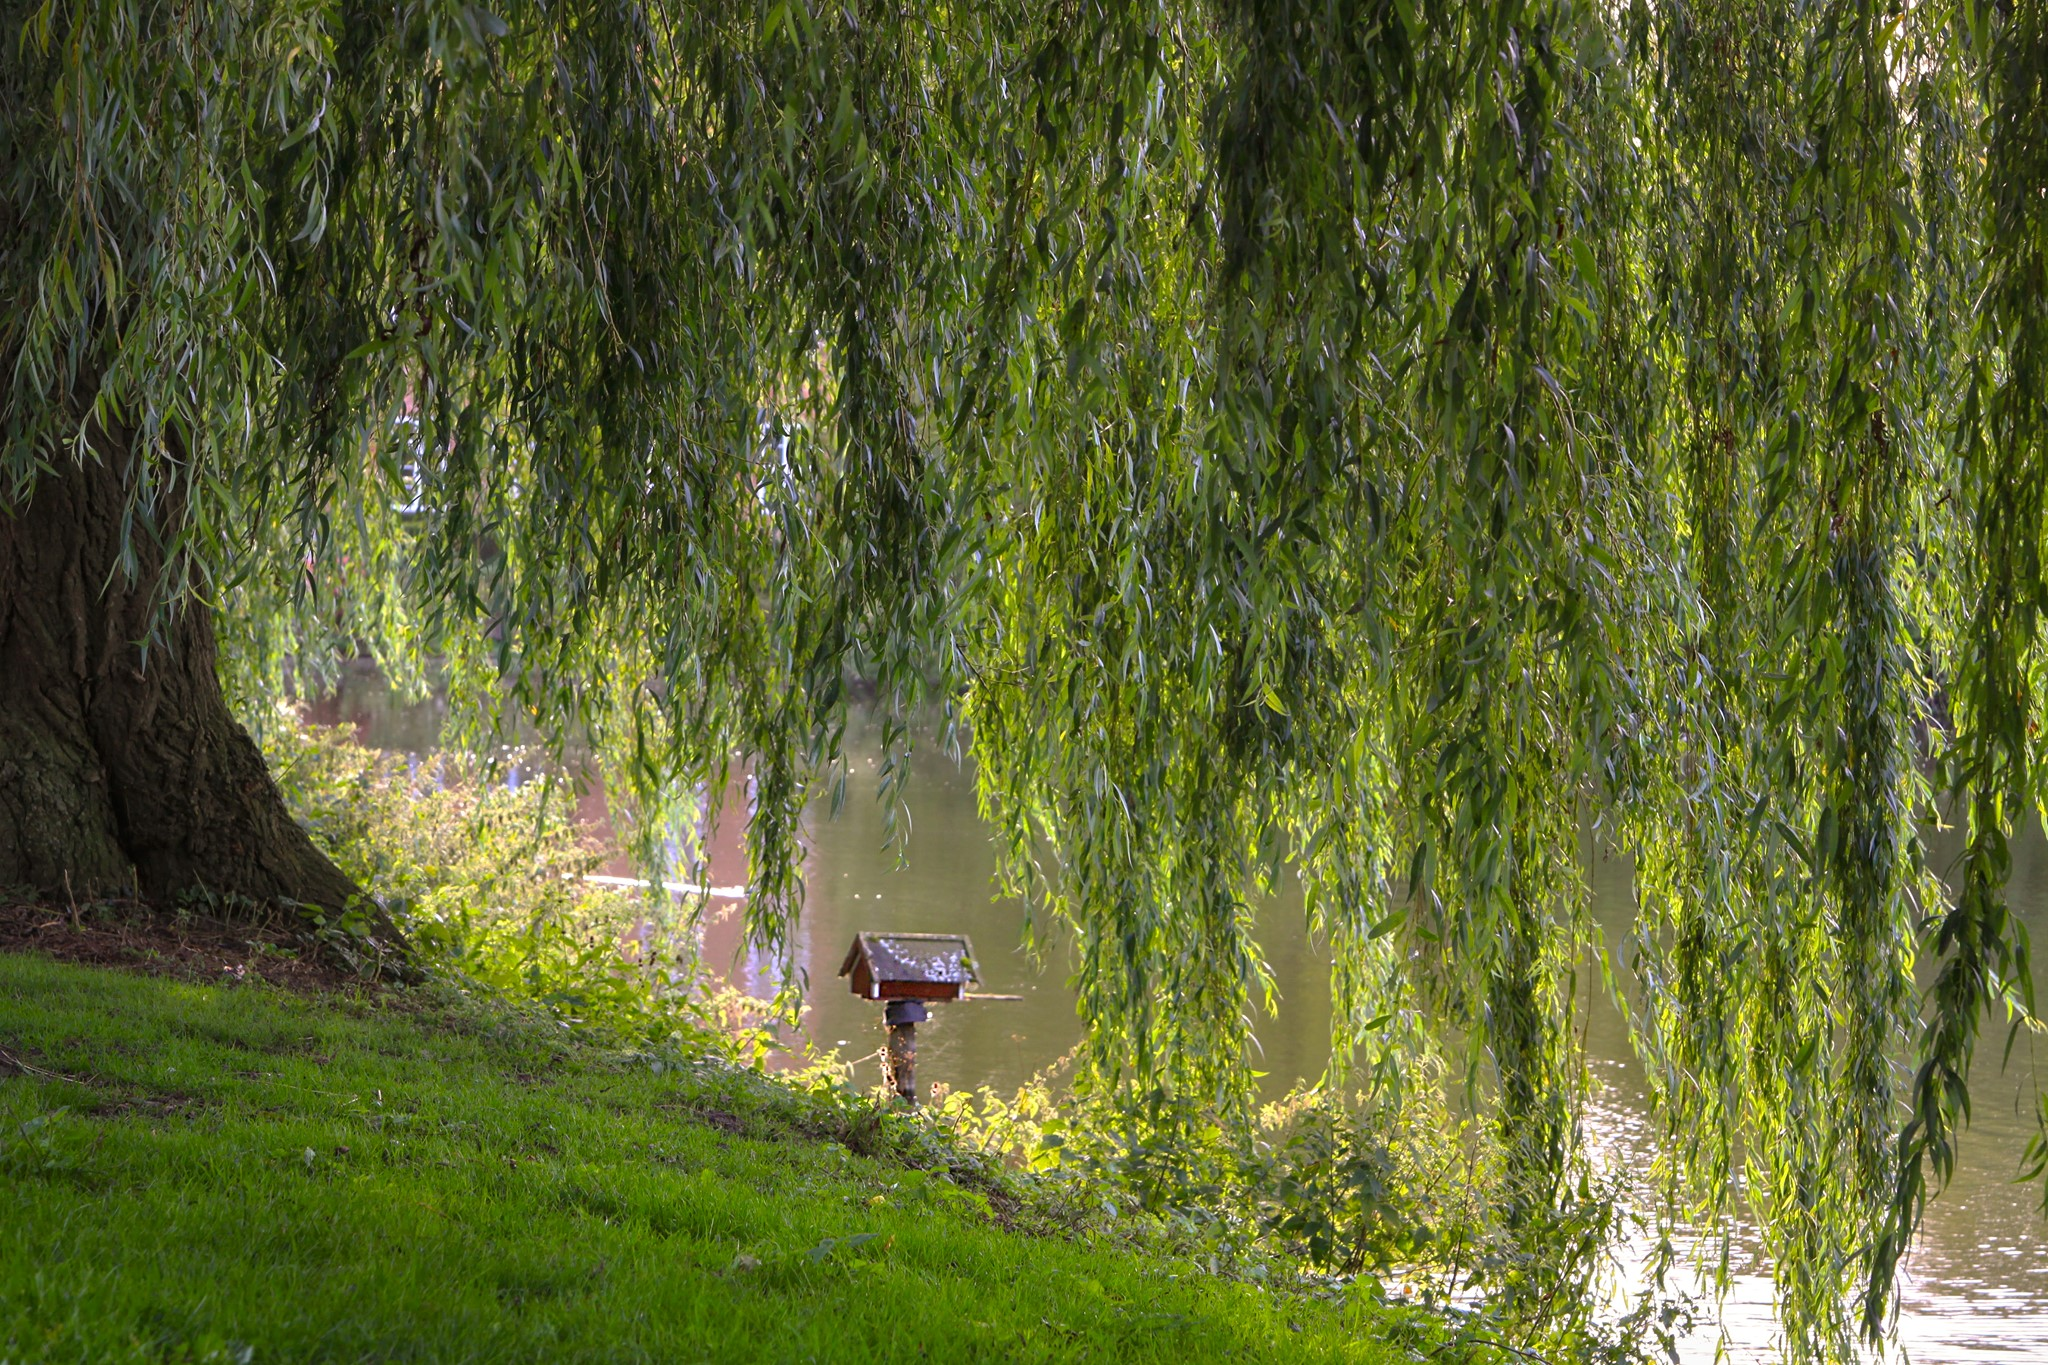 A glorious Willow tree